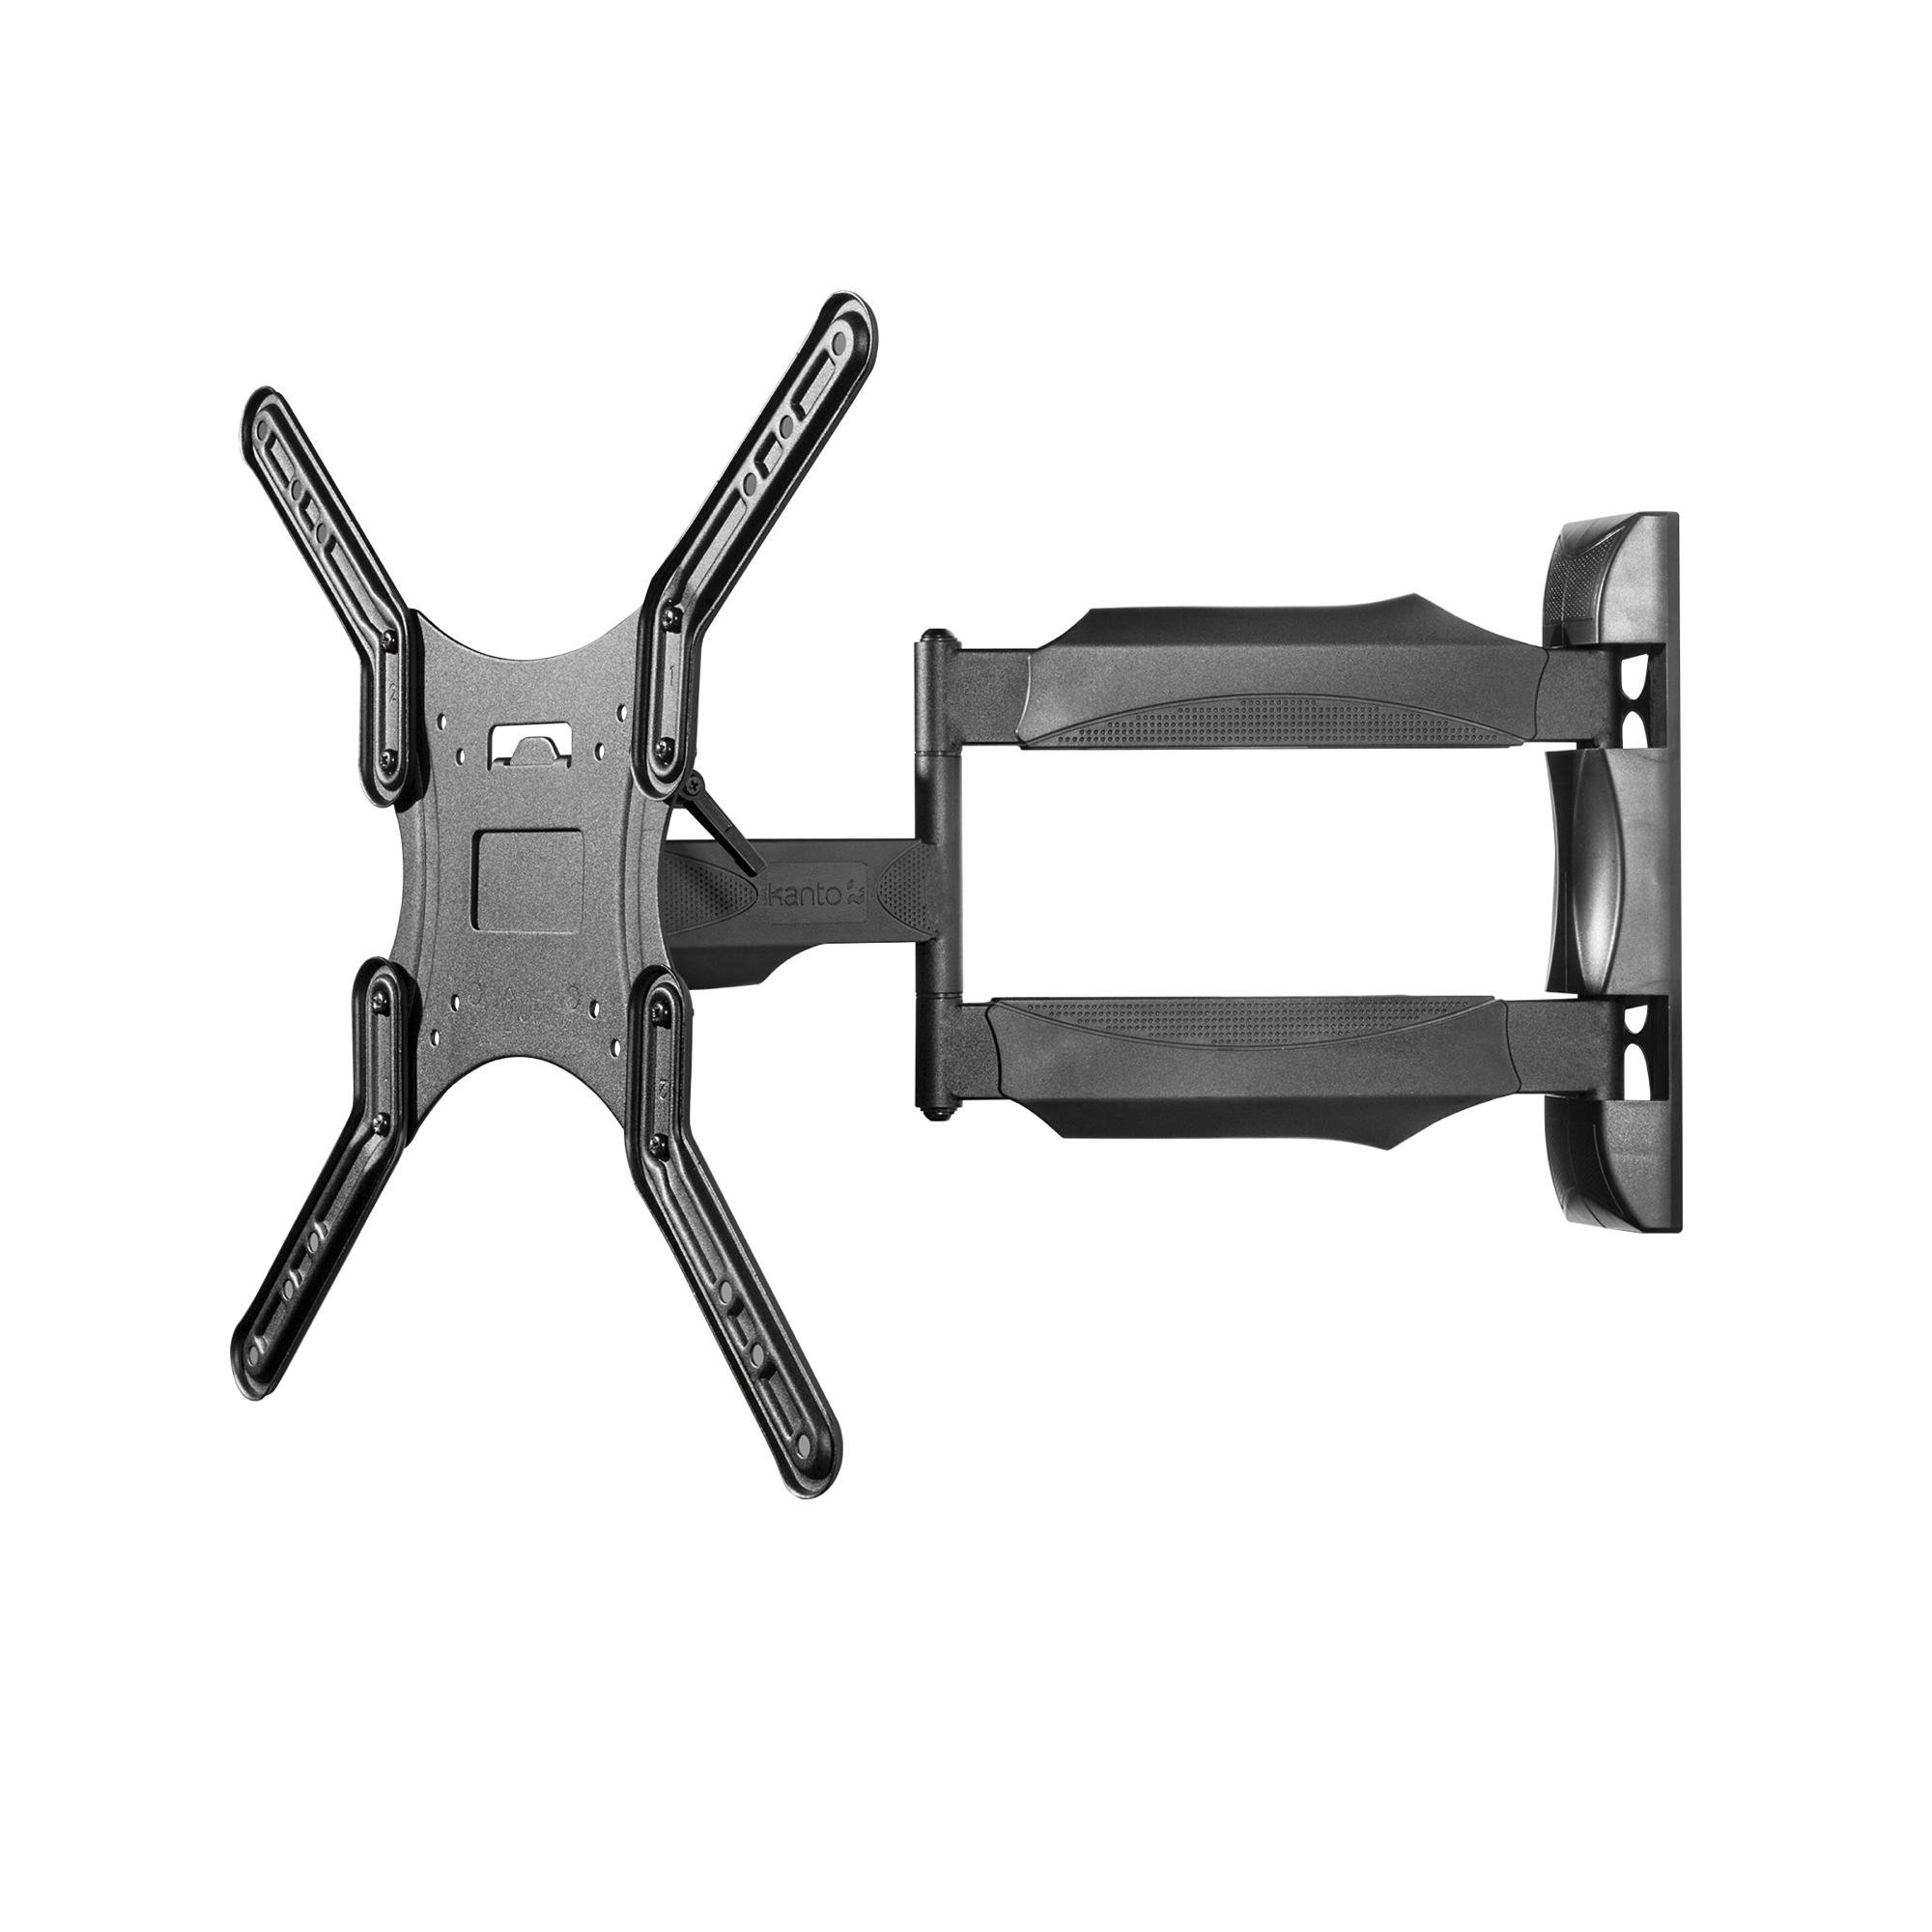 Kanto M300 Full Motion TV Mount - for 26-inch to 55-inch Television Sets - Accessible Tilt Mechanism with 135° Swivel Function - Solid Steel Construction by Kanto